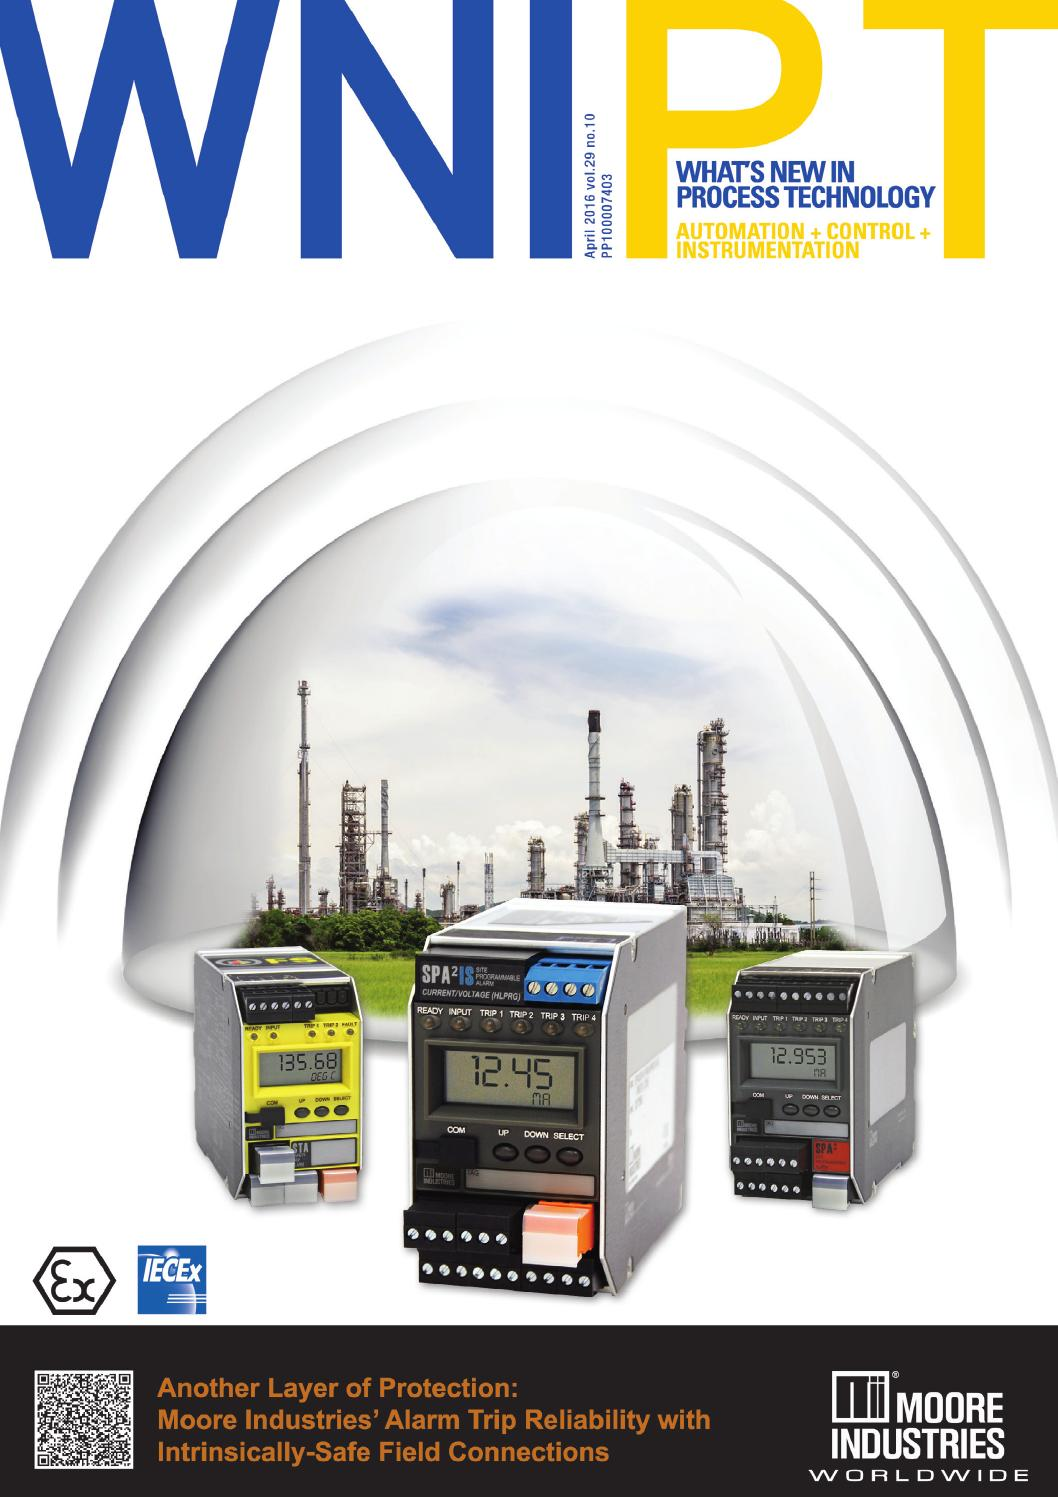 Whats New In Process Technology Apr 2016 By Westwick Farrow Media Automation And Controls How To Test Whether A Sensor Has Pnp Or Npn Issuu